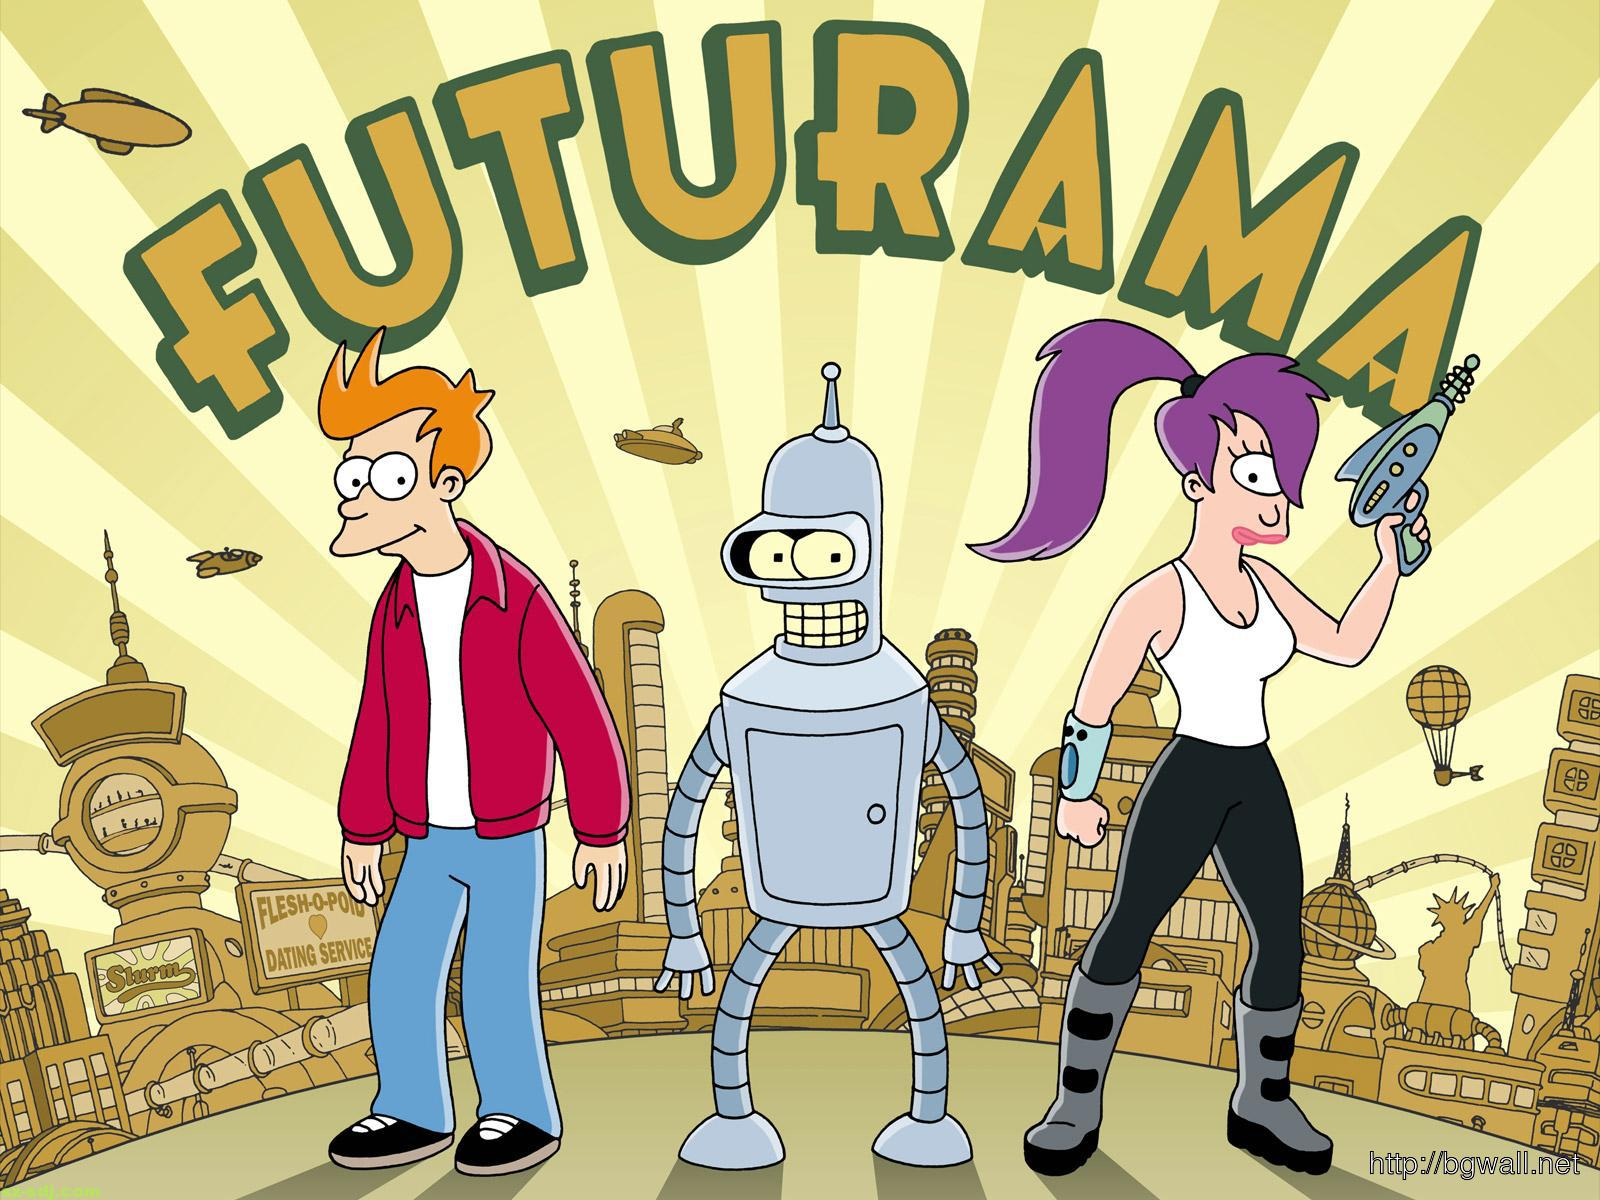 futurama-image-wallpaper-background